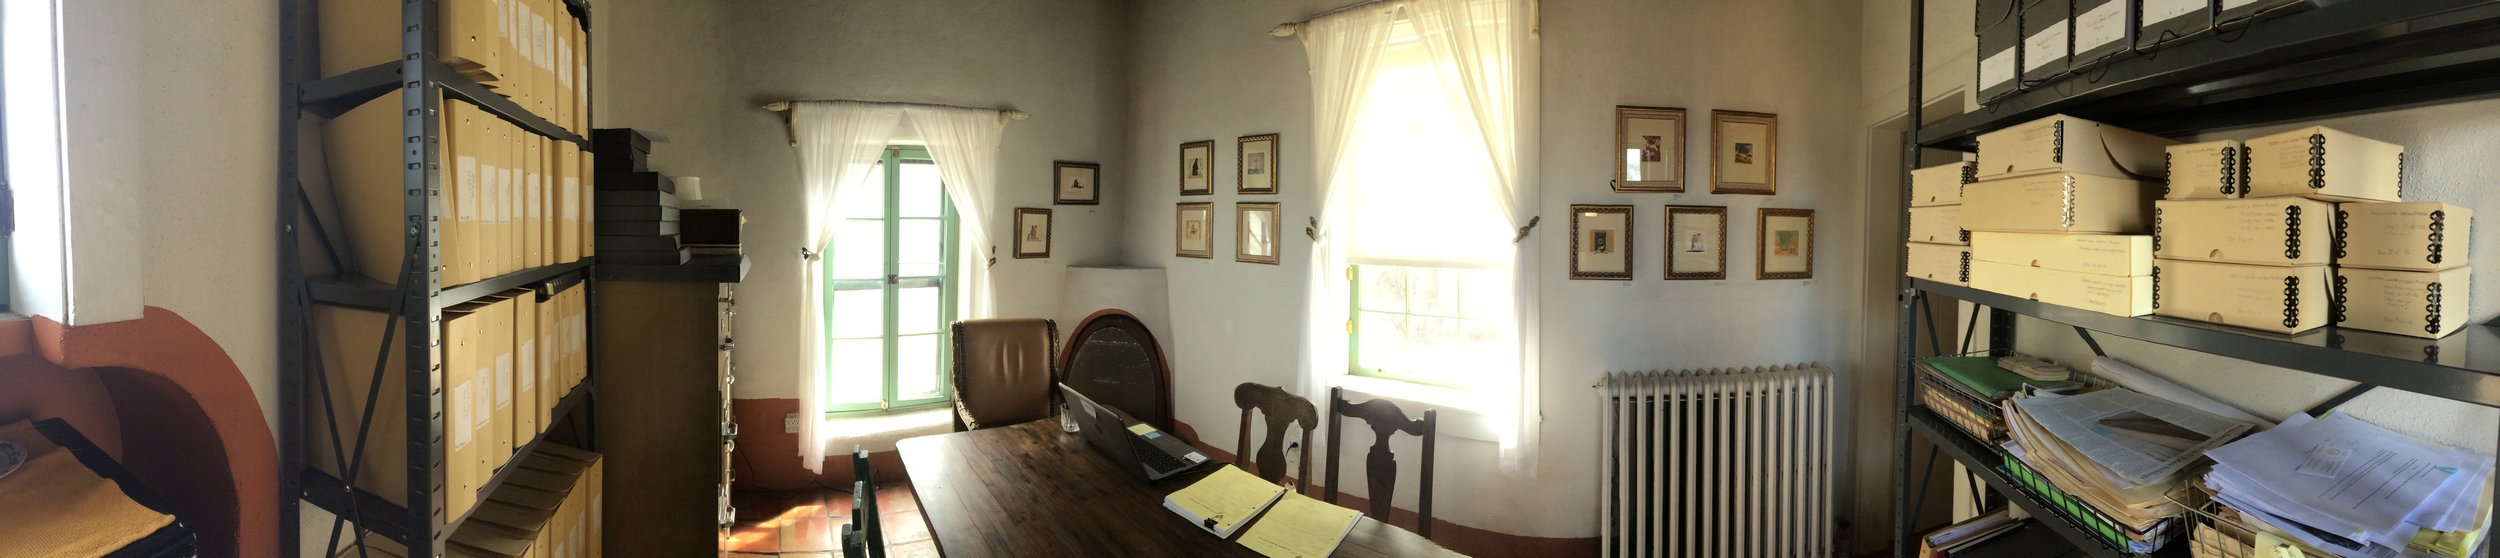 Archives Room Panorama